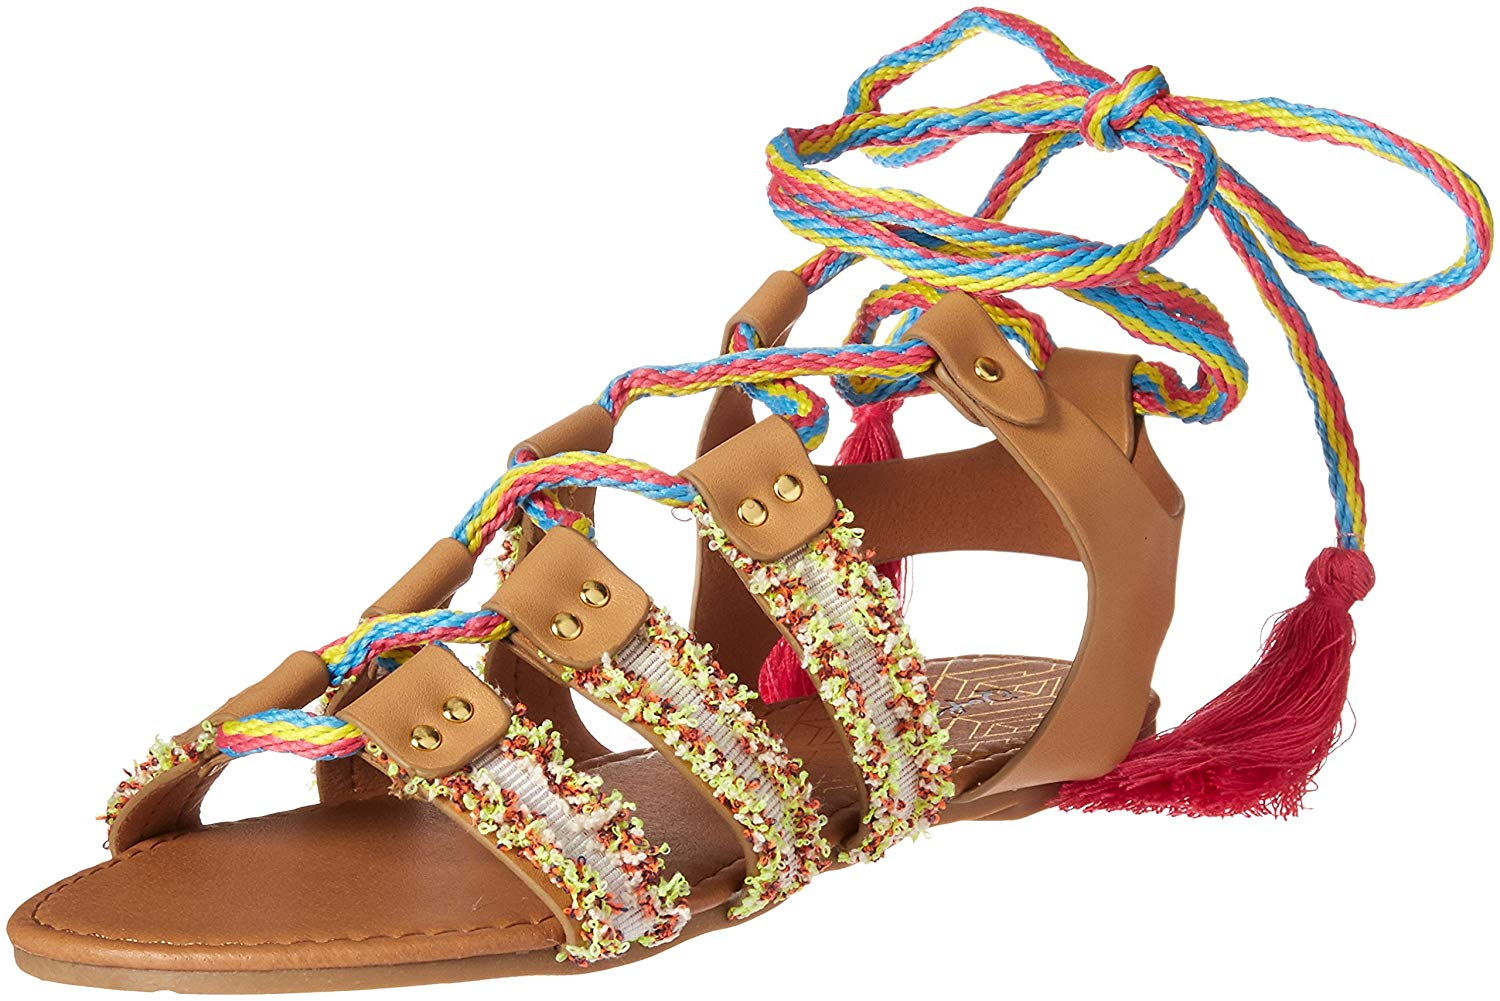 536c05a15 Qupid Womens Archer Open Toe Casual Gladiator Sandals